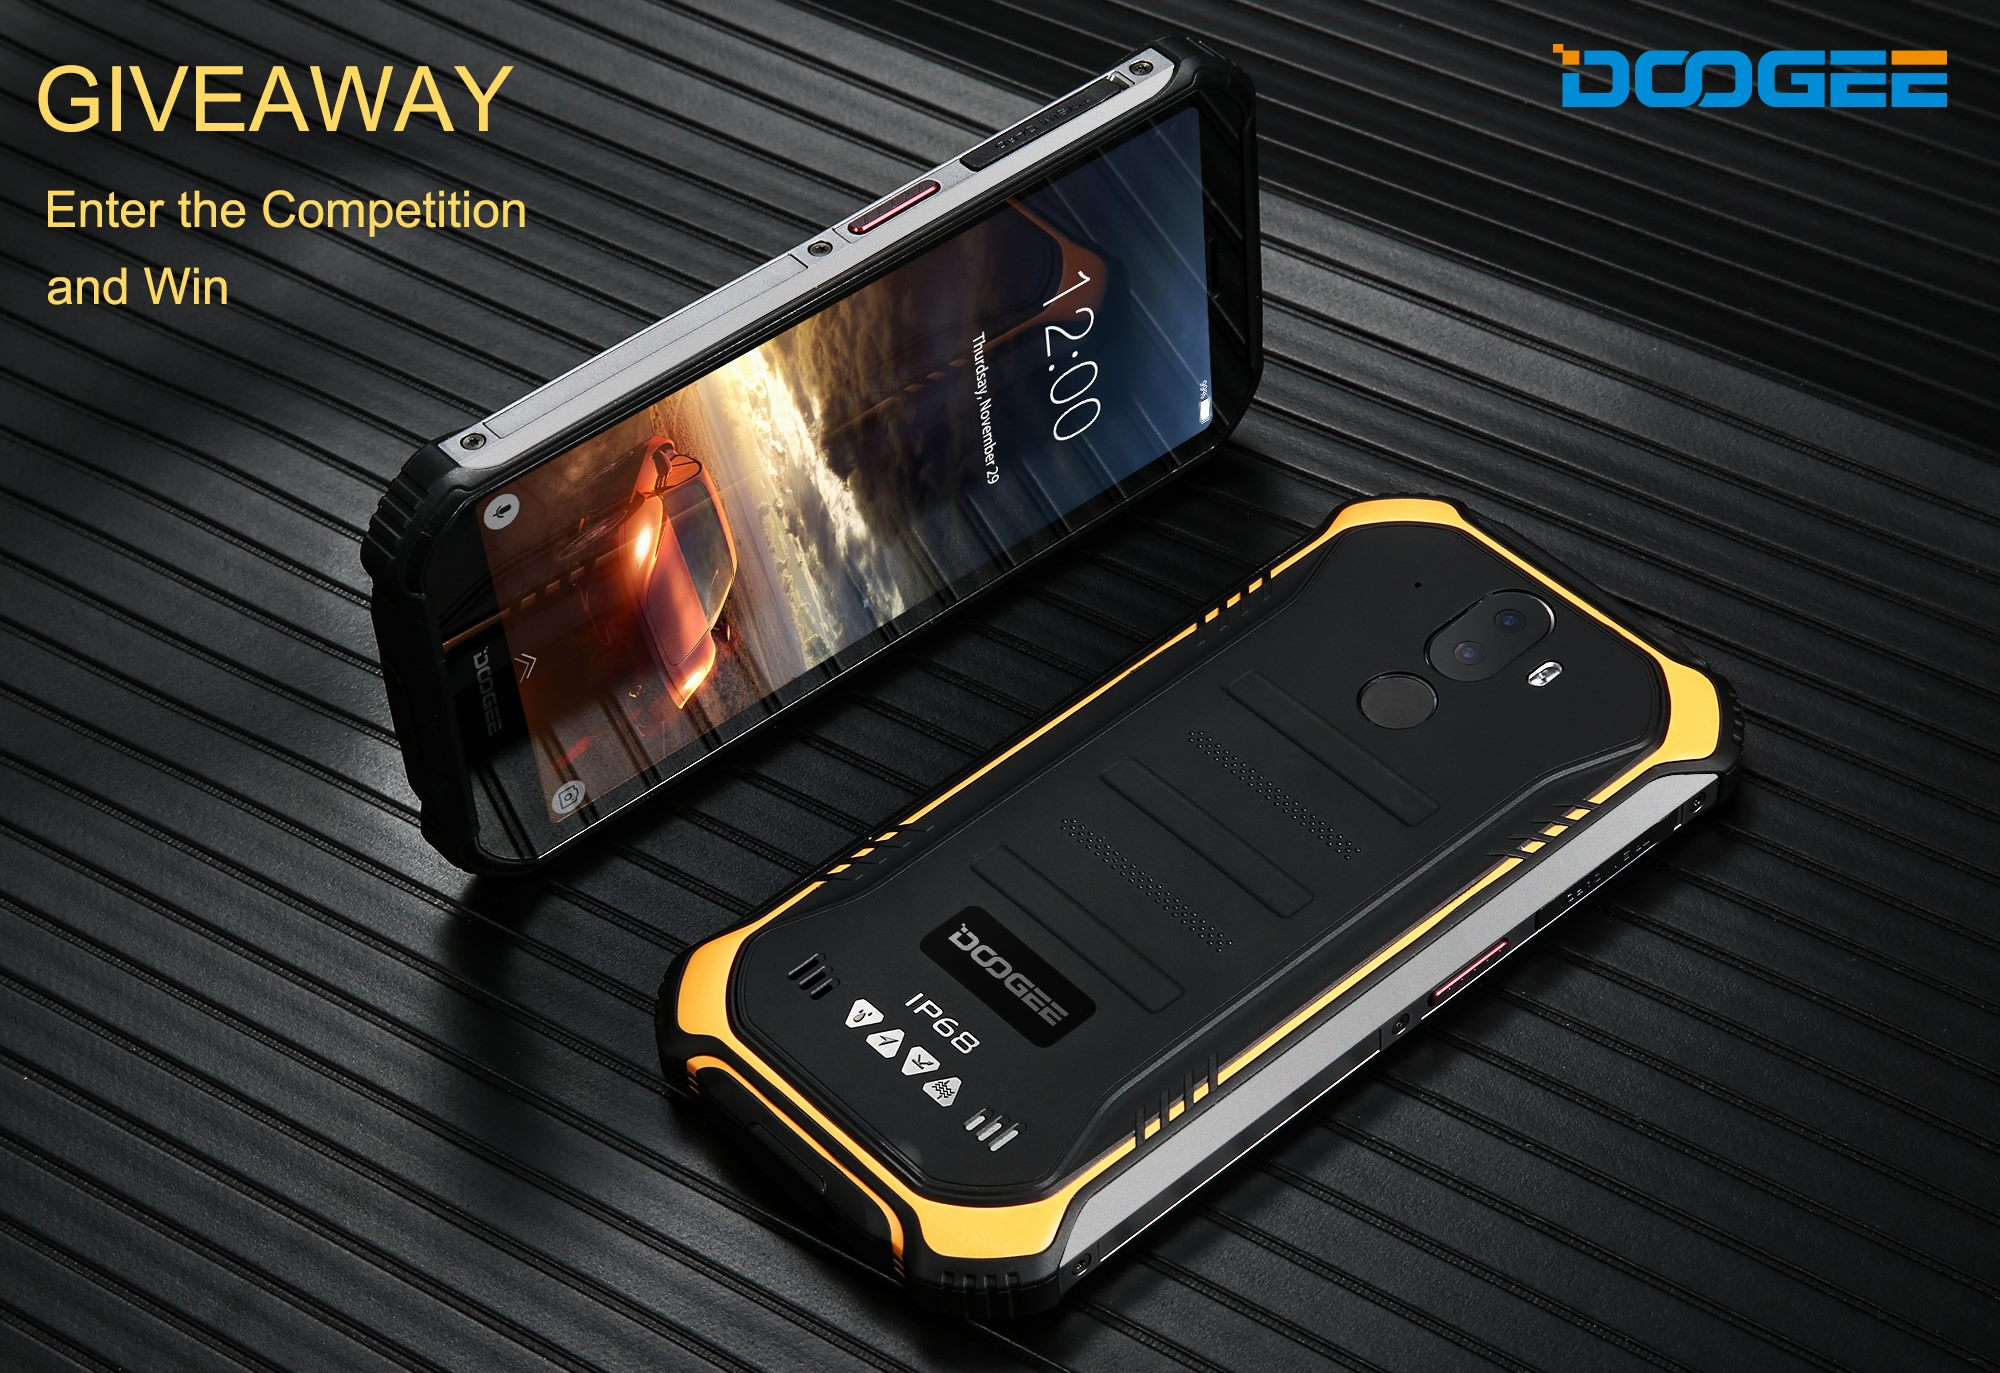 #giveaway Enter the competition to win the FREE rugged phone S40!👏👏😜 Winner will be randomly chosen by Gleam widget #gleam #doogee #ruggedphone #s40